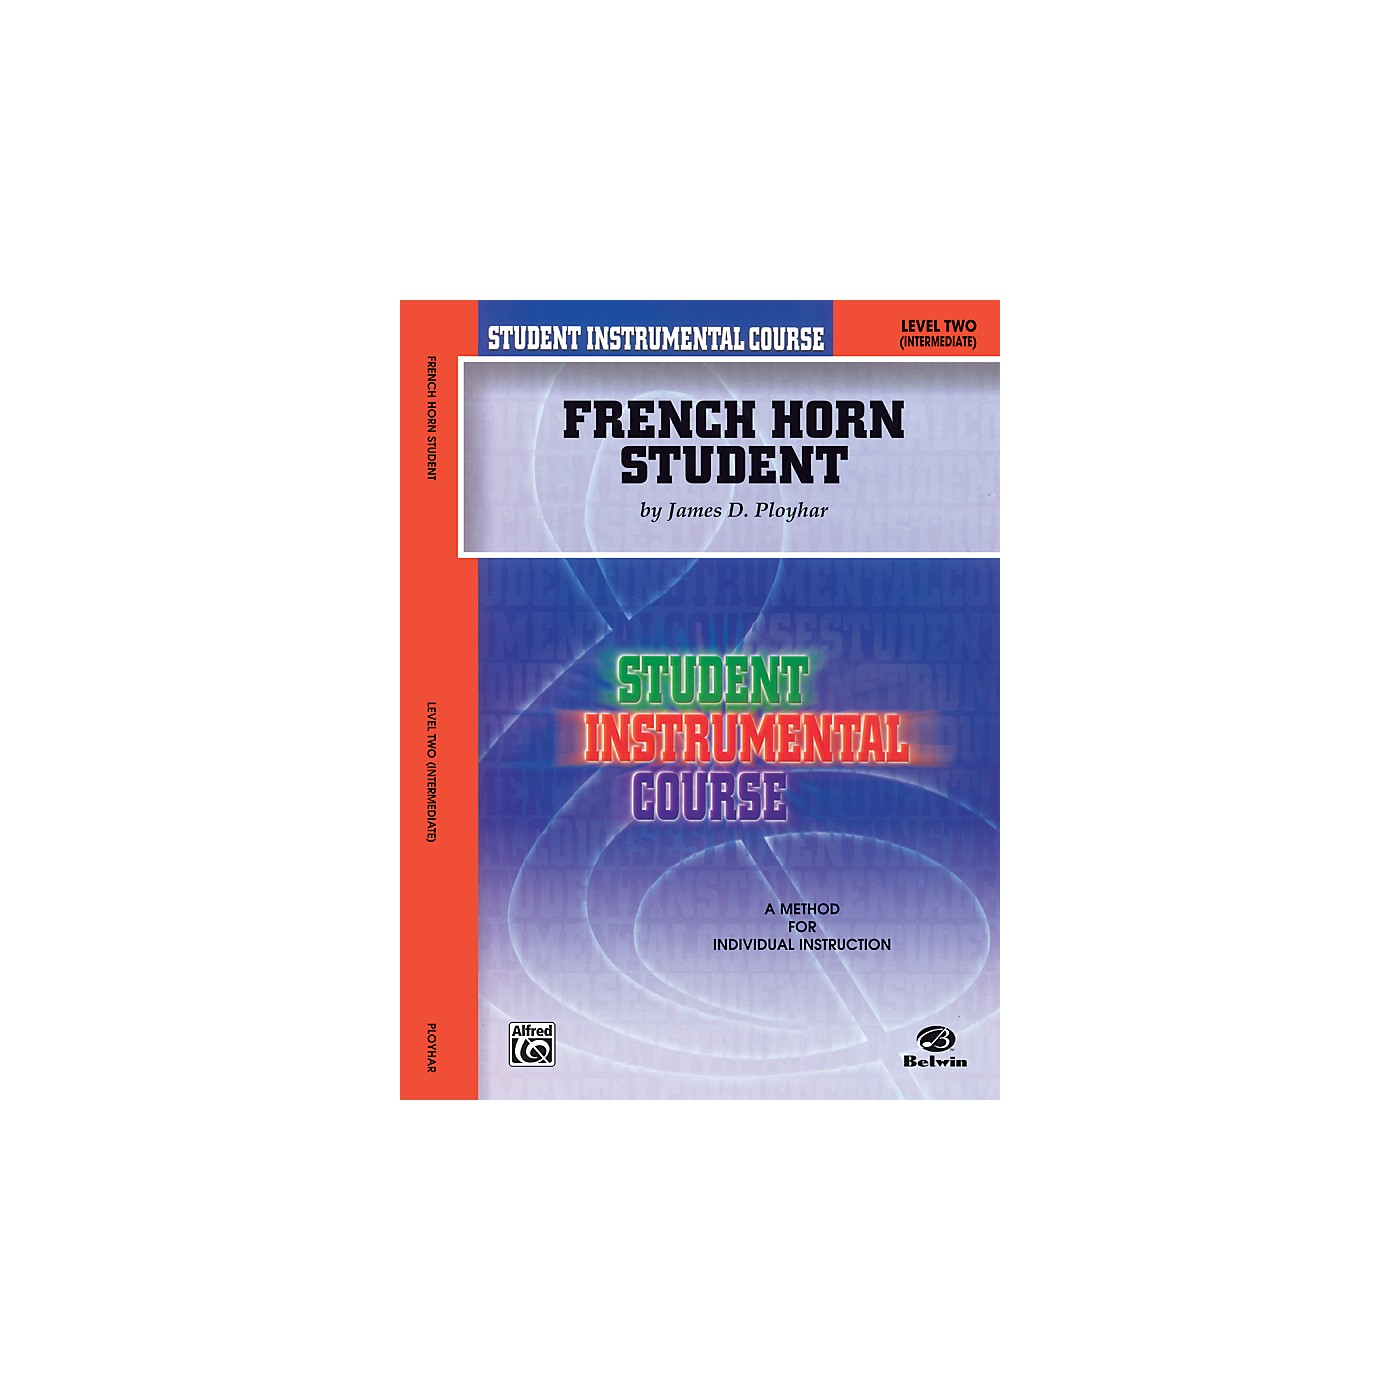 Alfred Student Instrumental Course French Horn Student Level 2 Book thumbnail